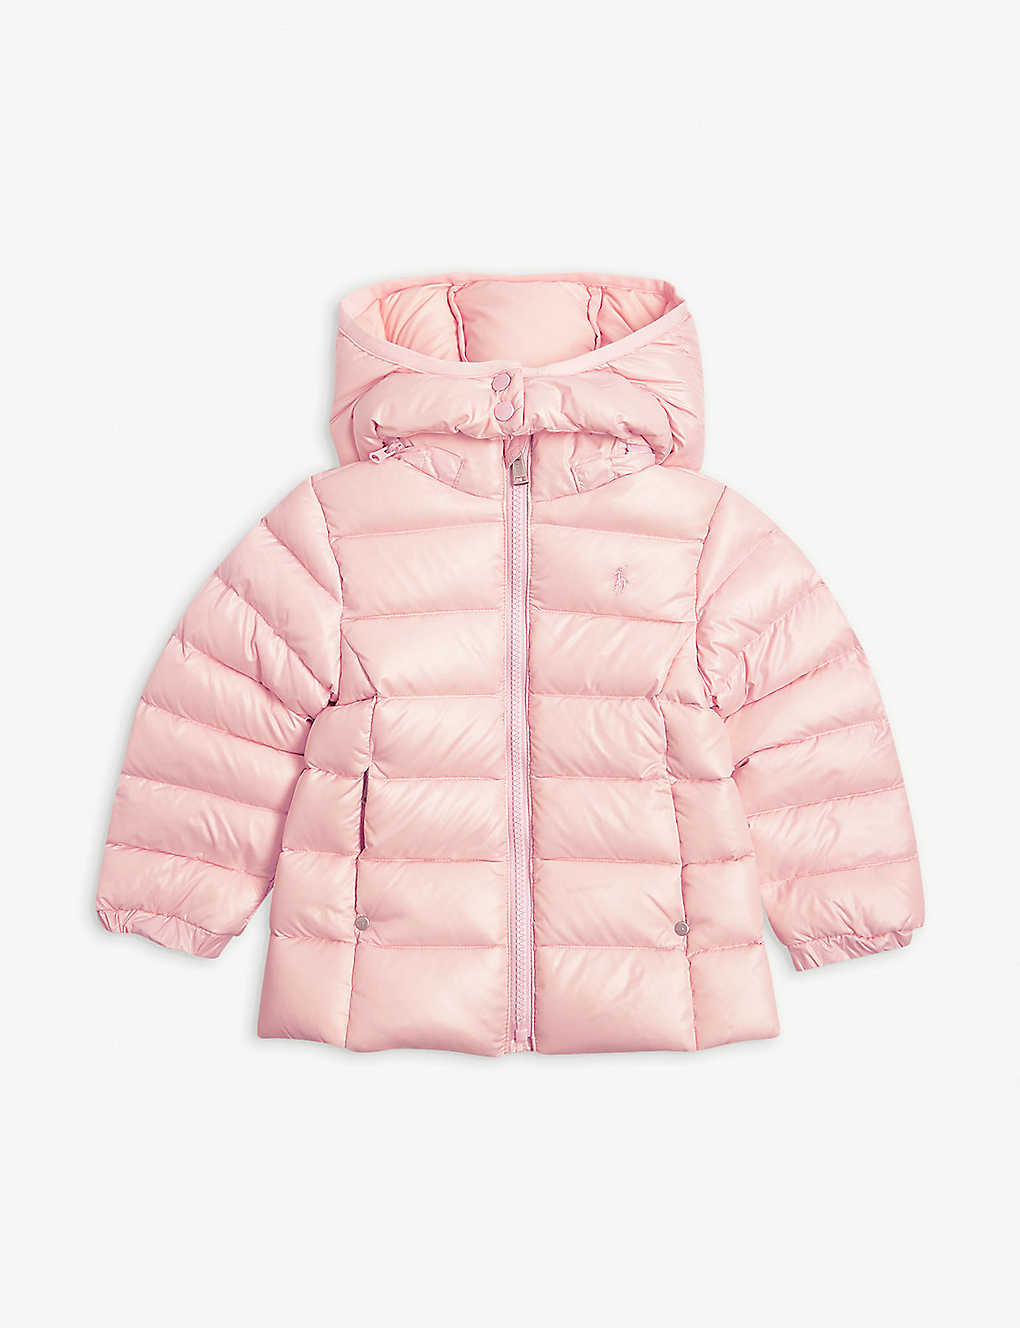 RALPH LAUREN: Quilted down jacket 1-7 years